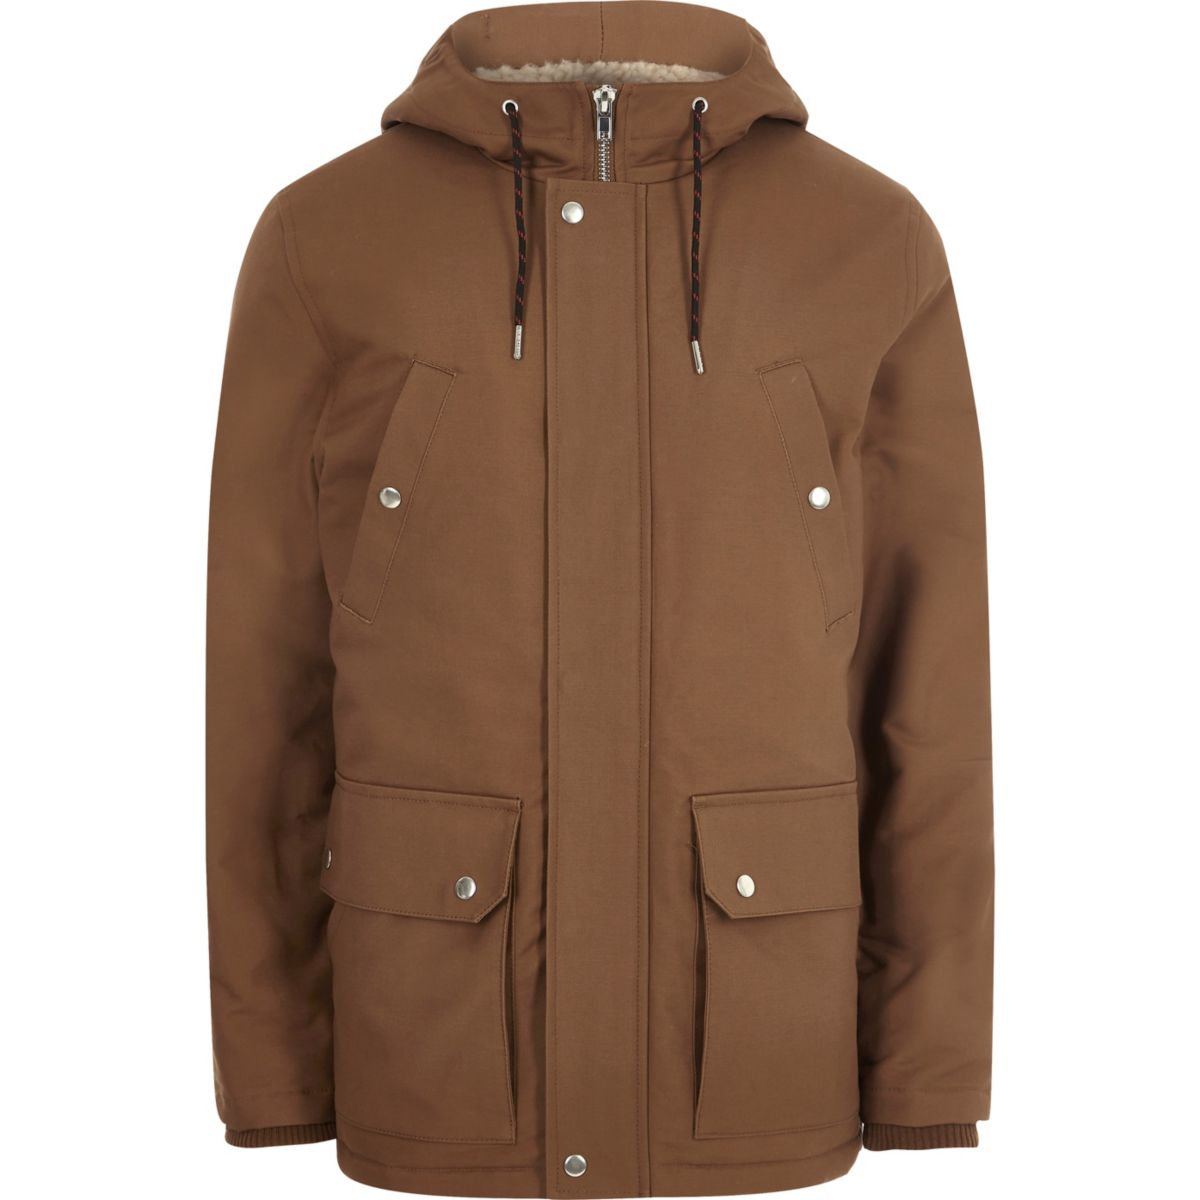 Brown hooded fleece lined jacket